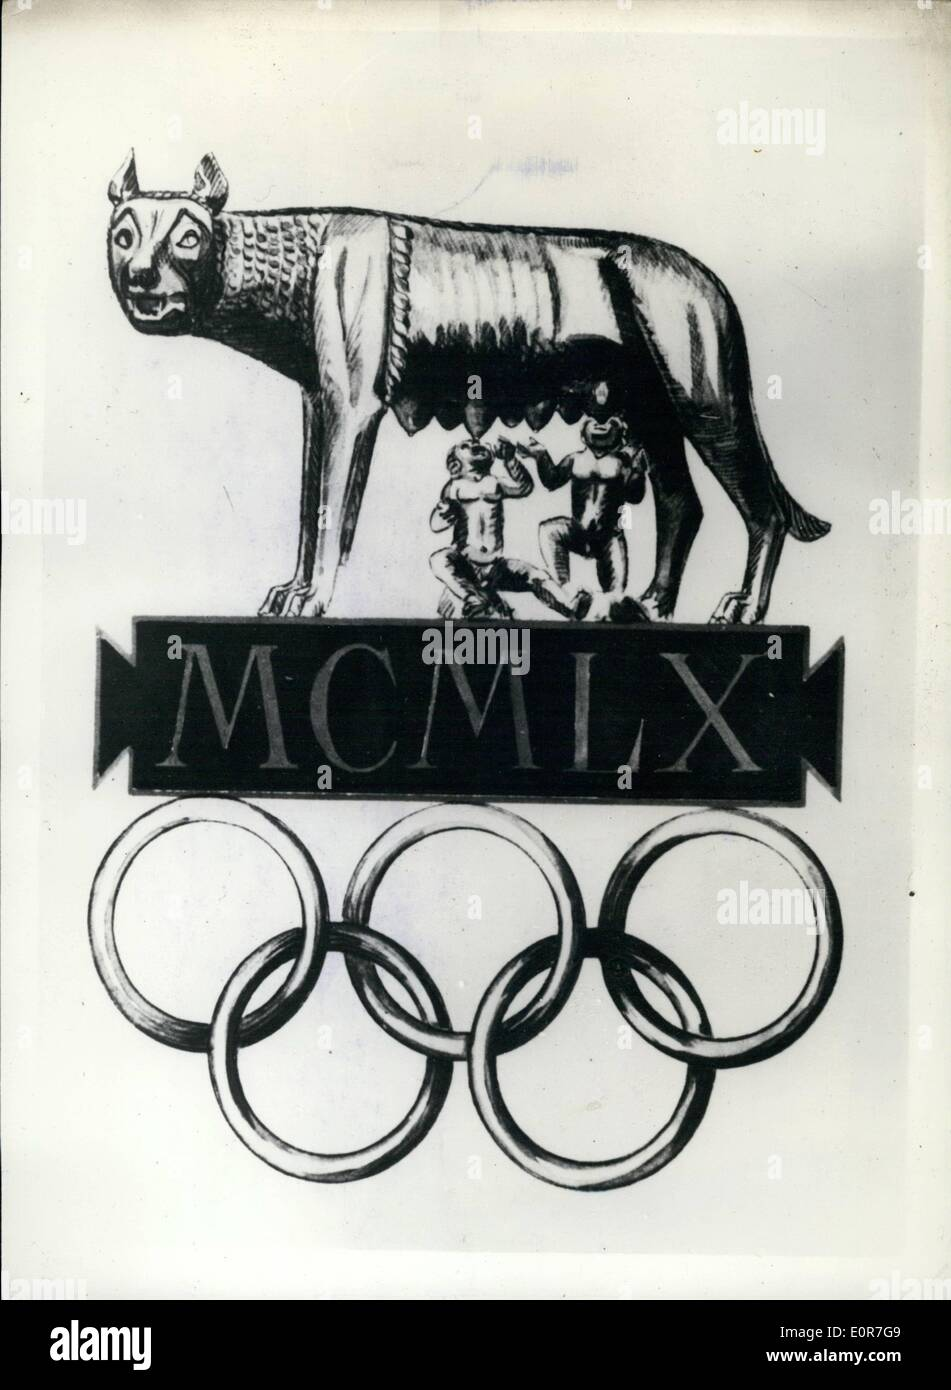 Jun 25 1958 25 6 58 The Emblem For The 1960 Olympics In Rome